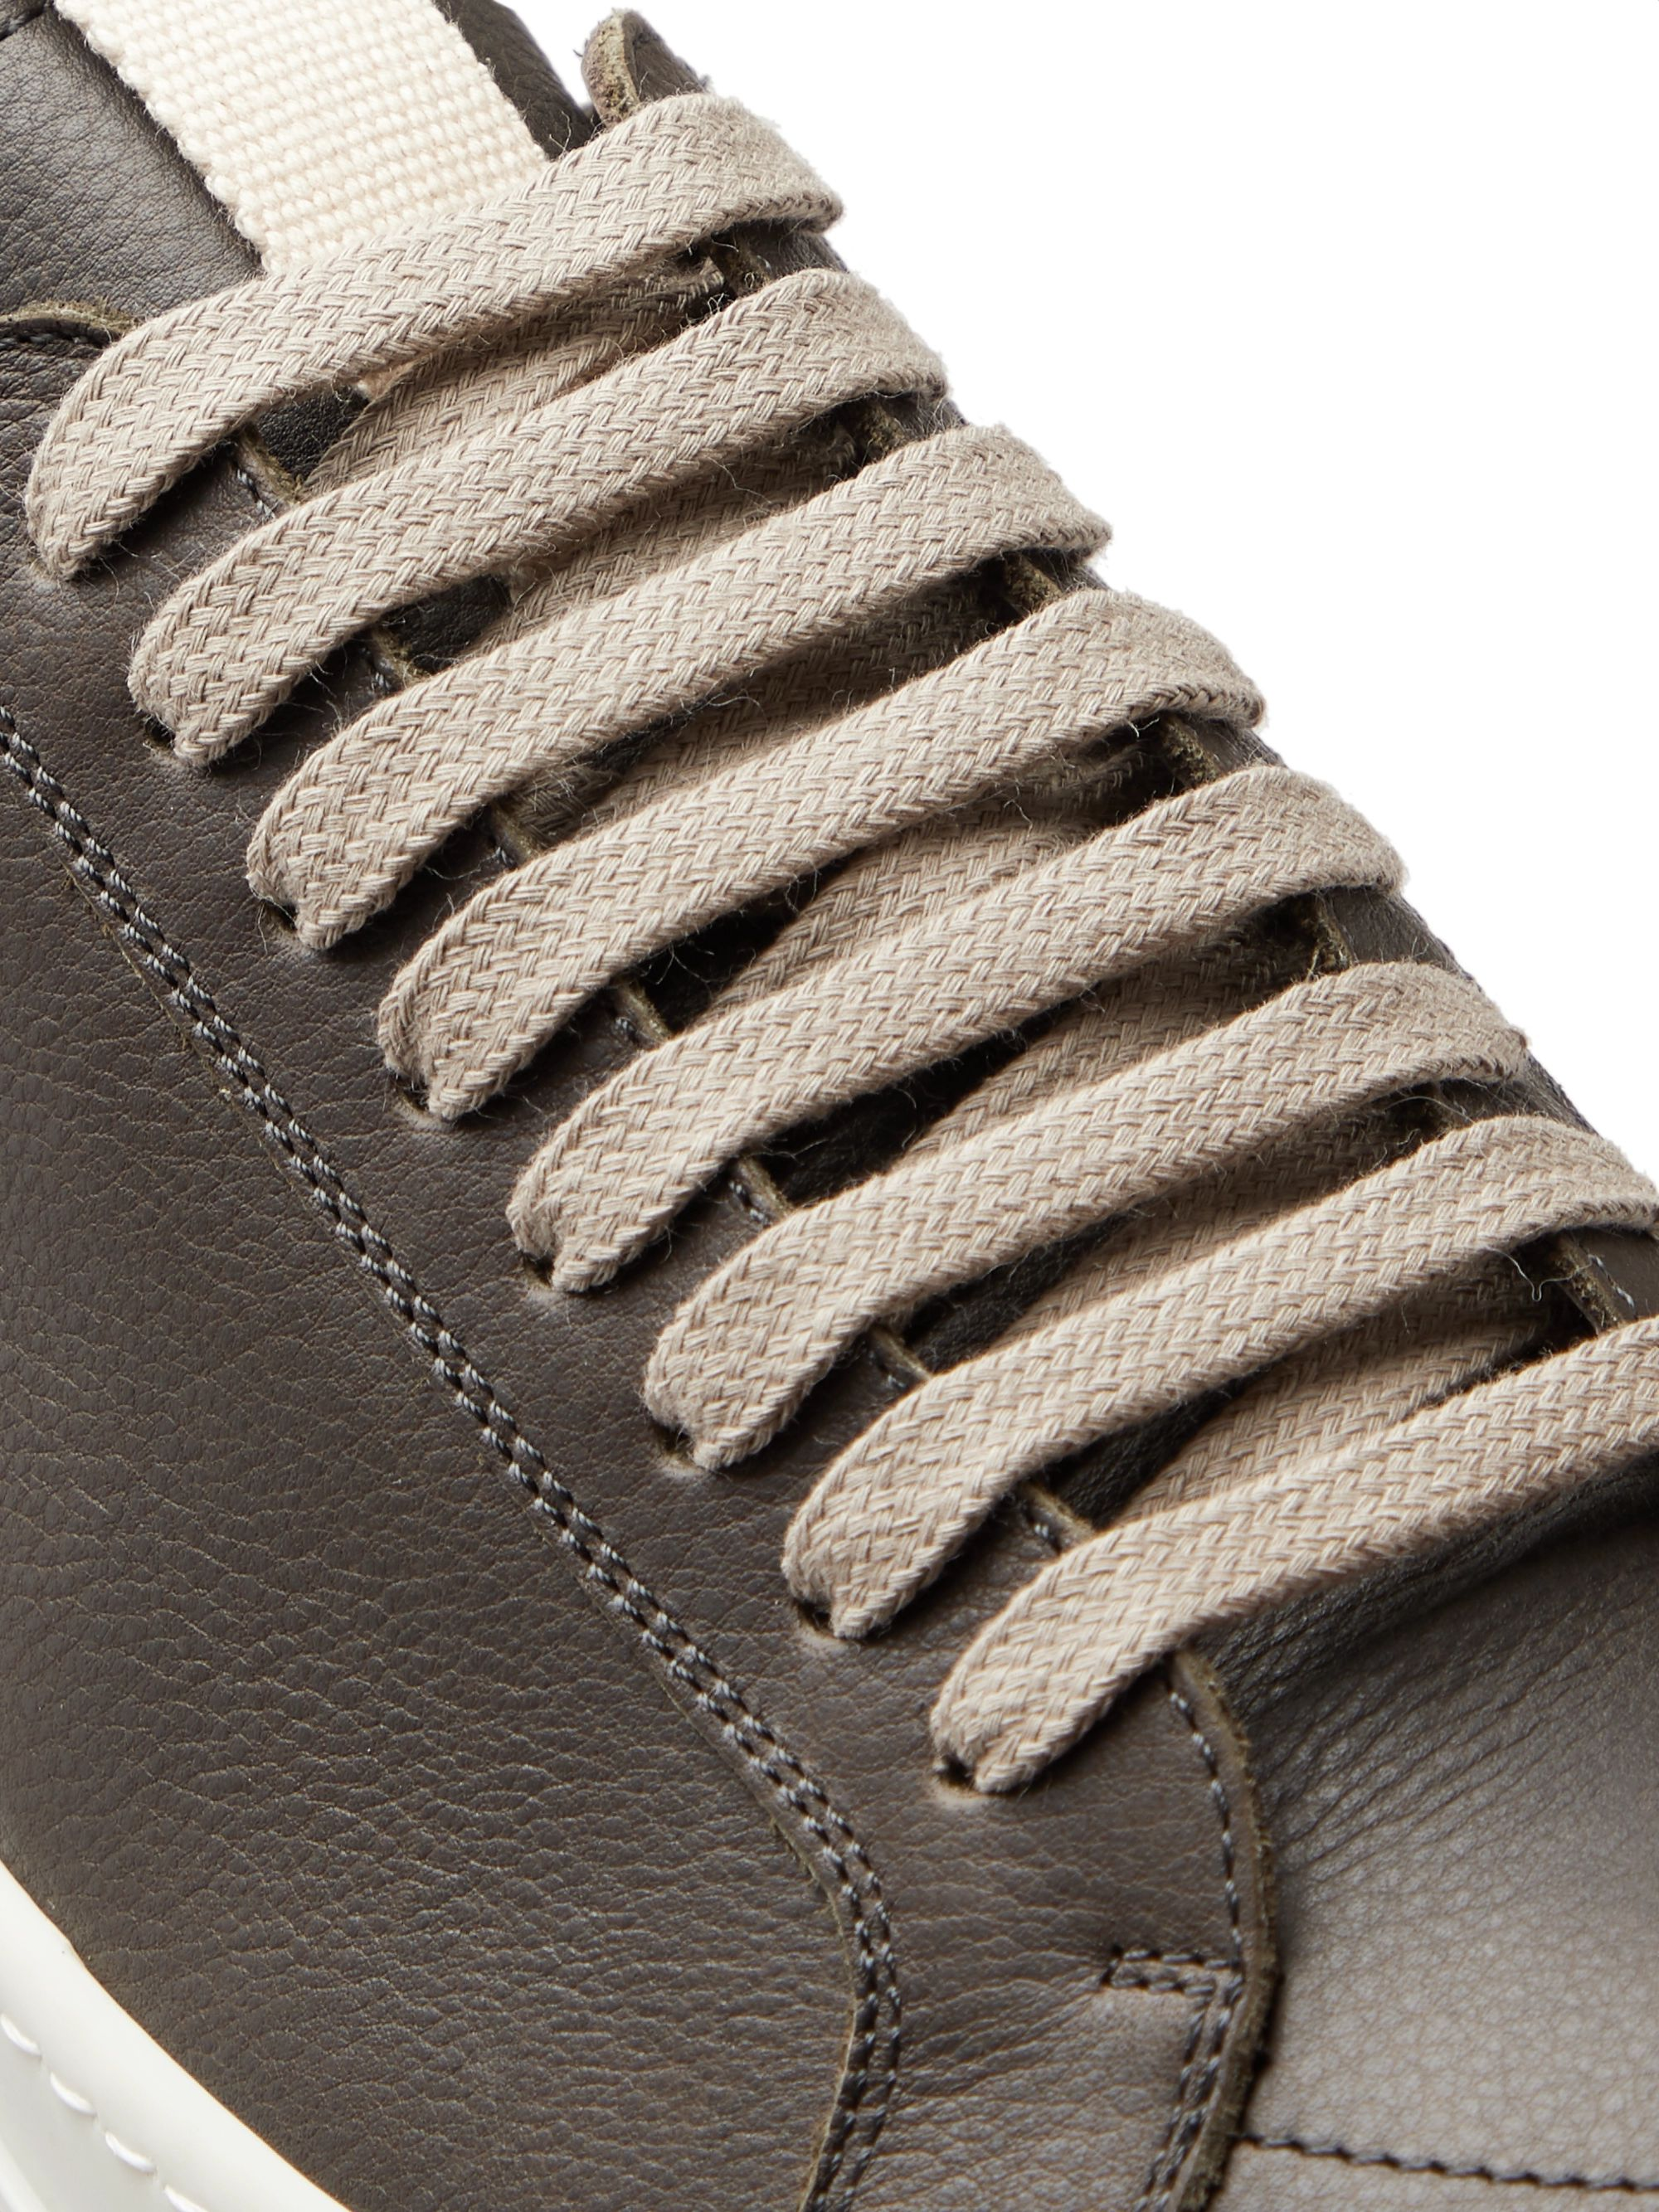 Rick Owens Clear Sole Grosgrain-Trimmed Leather Sneakers